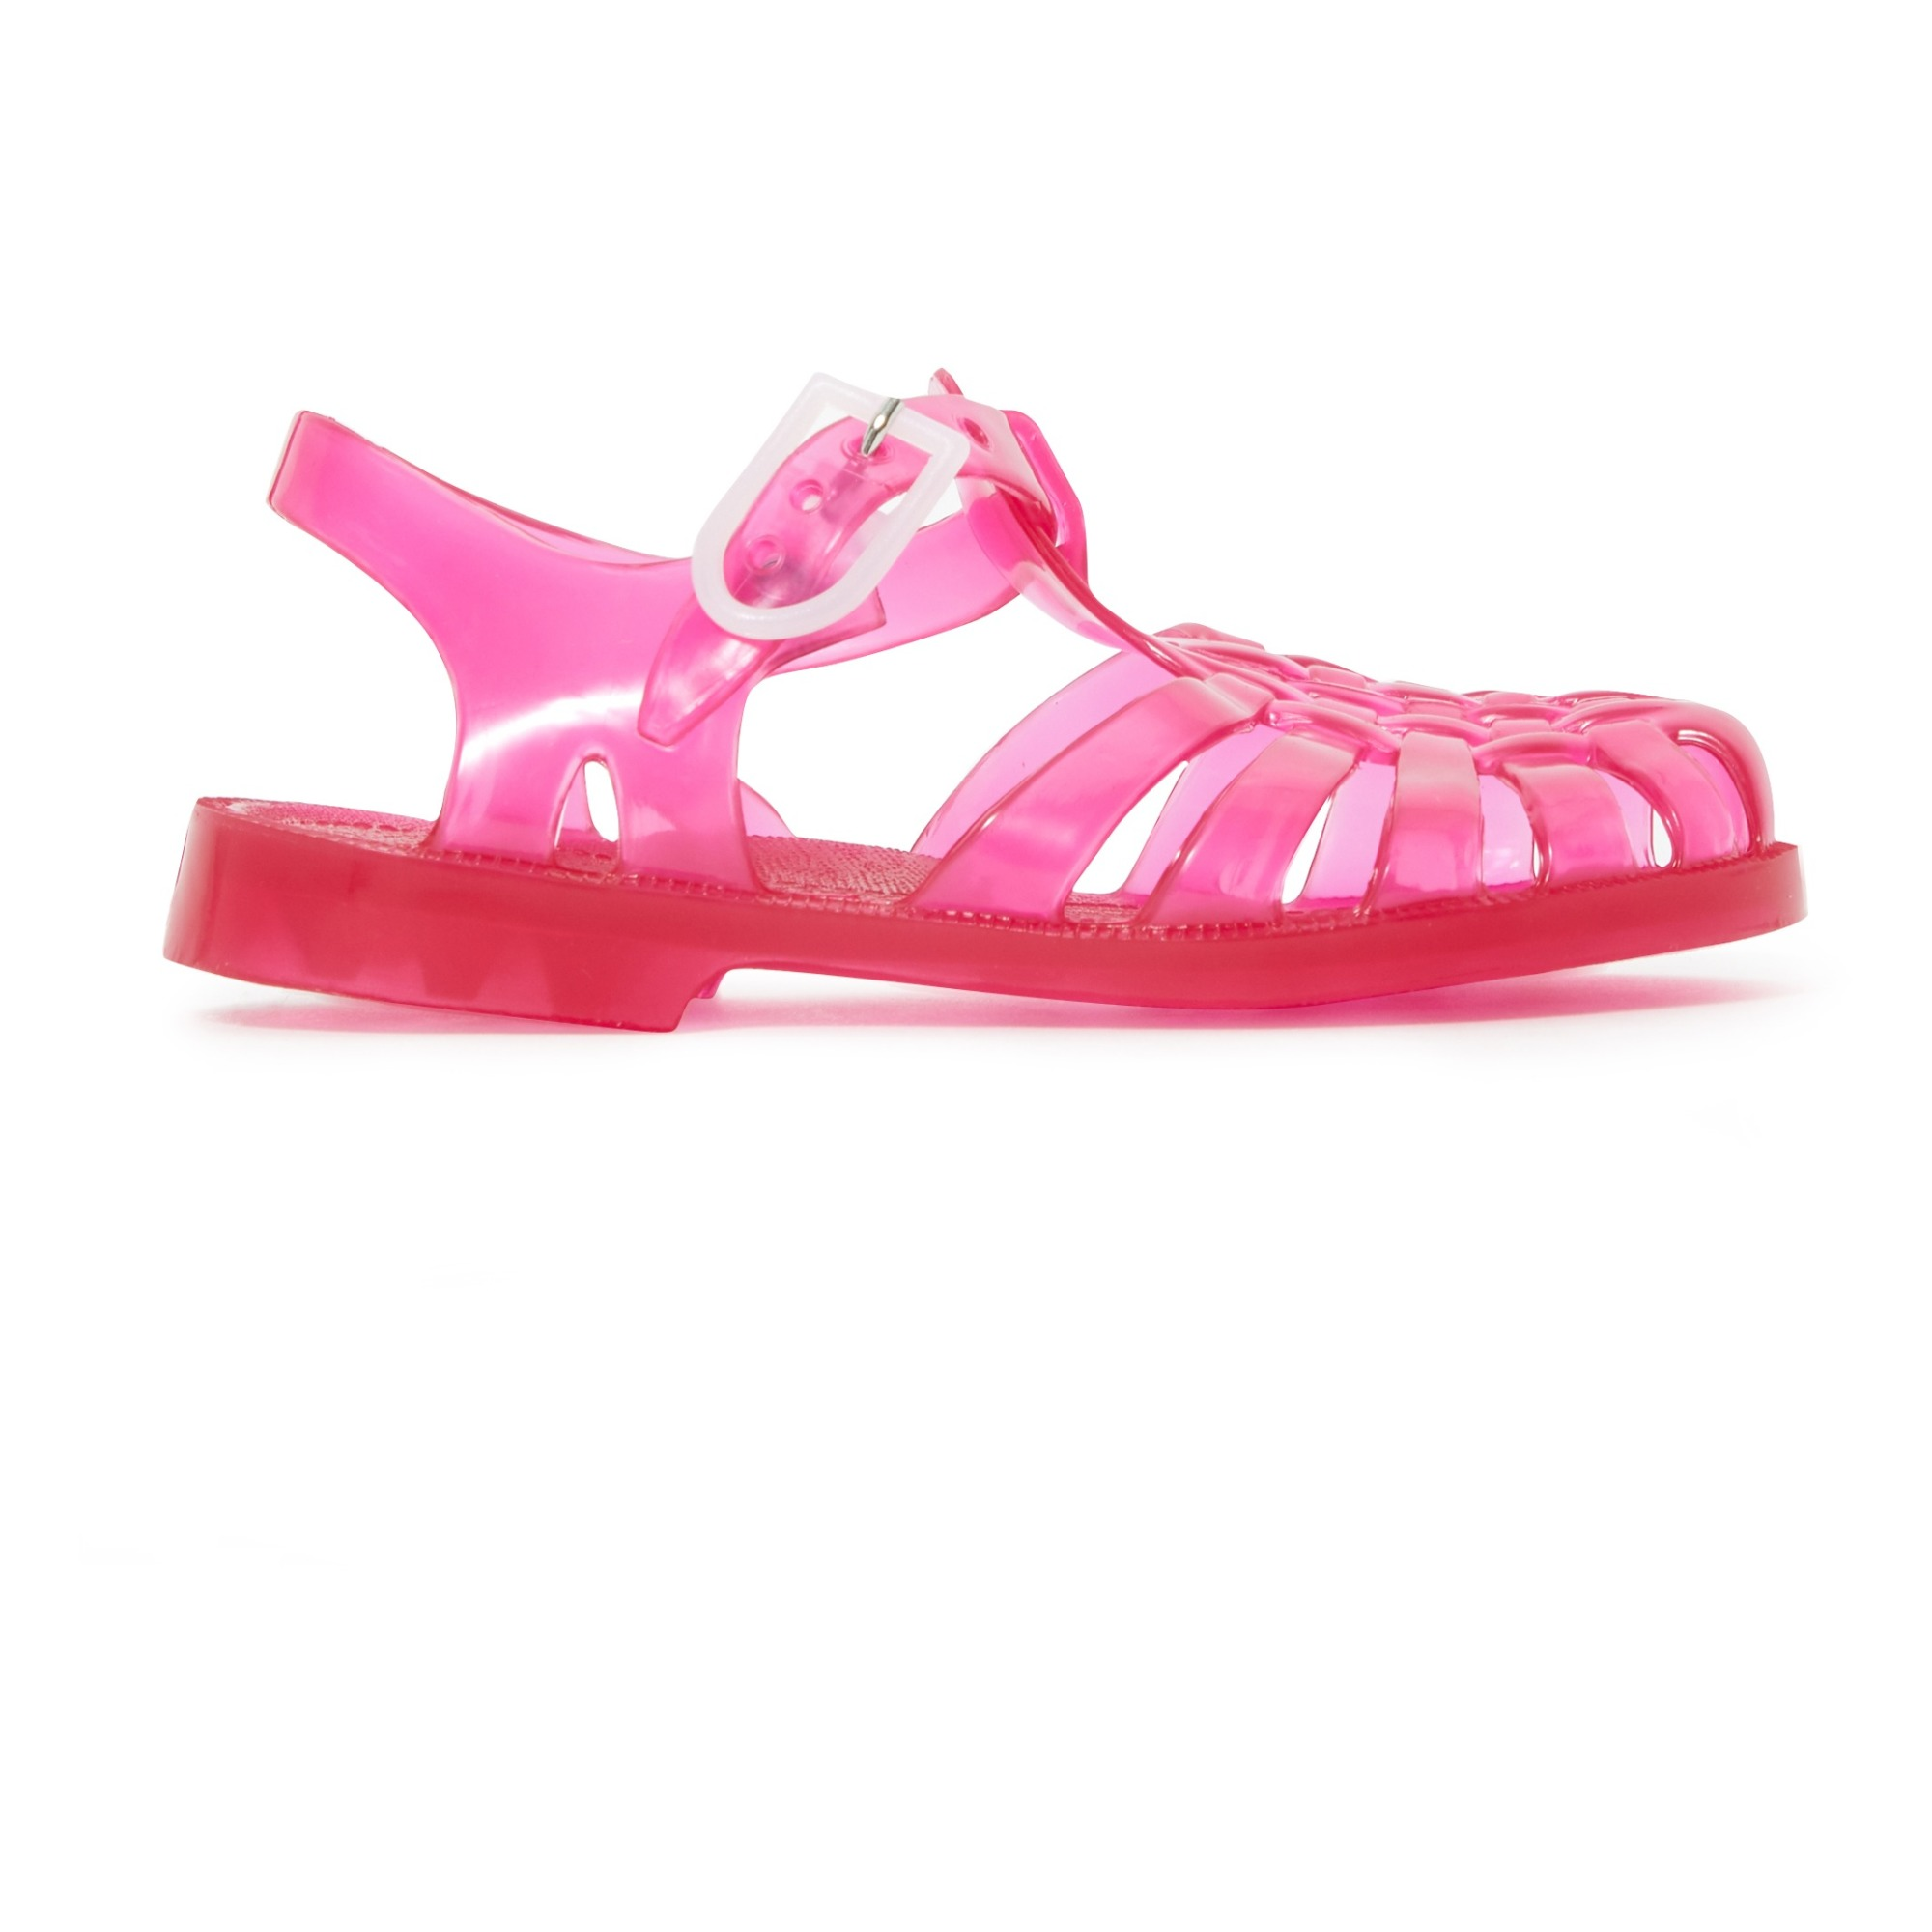 MEDUSE JELLY SHOES SANDLES GREY WHITE SIZE 39//6 BNWT RRP $39.99